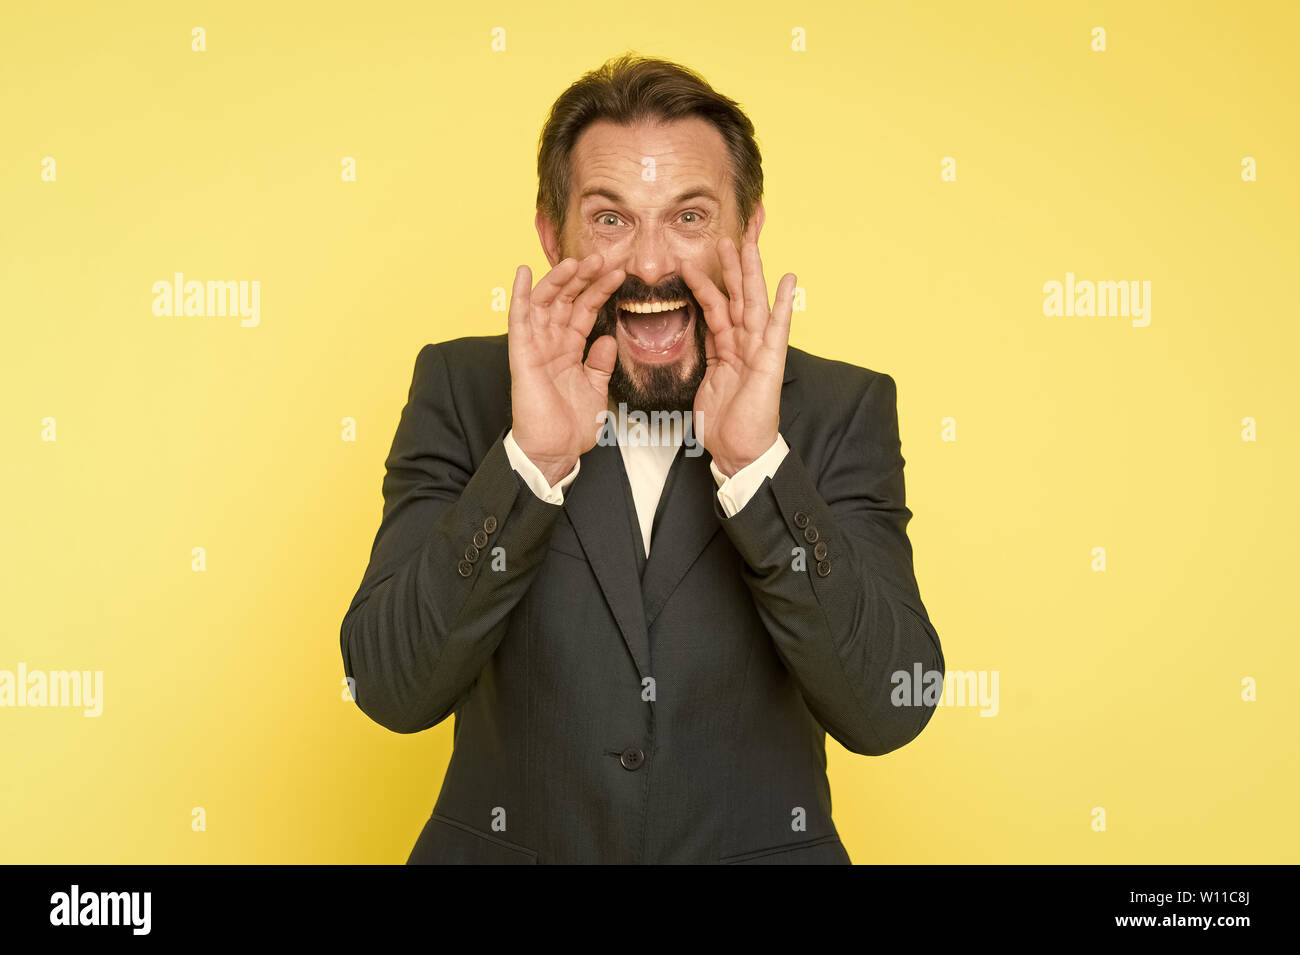 Man shouting to you. Art of negotiations. Man try to persuade you in something. Mature charismatic speaker try to persuade. Public talk and art of persuasive. Oratory concept. Can you hear him. - Stock Image